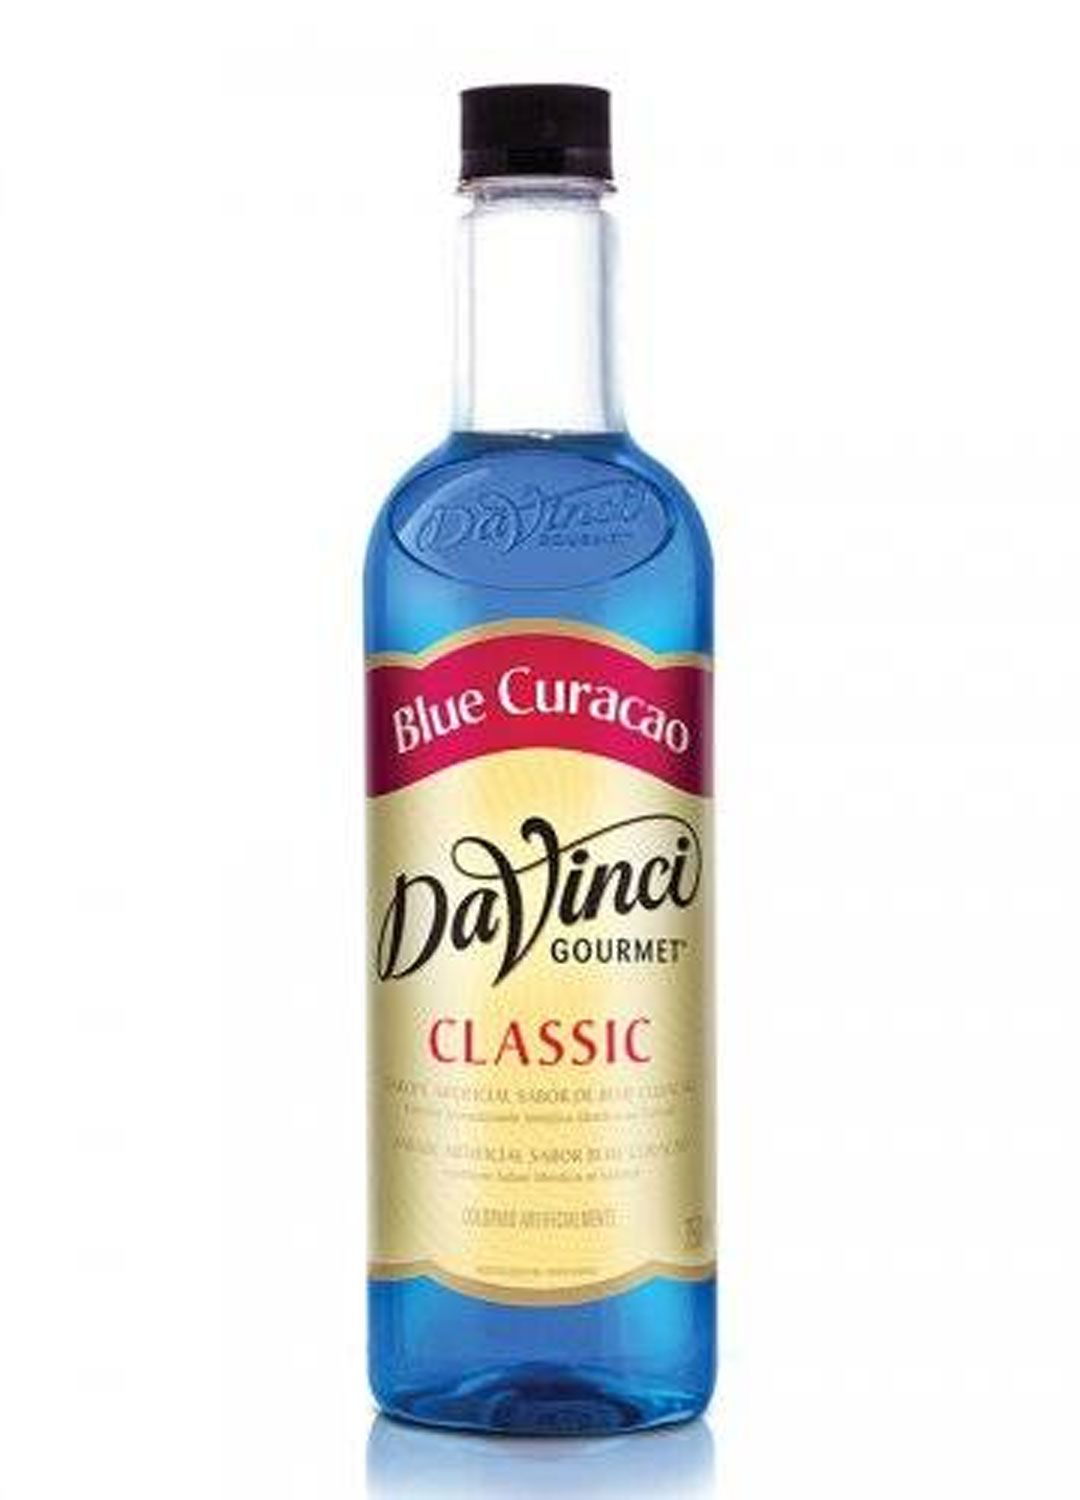 XAROPE PARA DRINKS DA VINCI - BLUE CURACAO - 750 ML